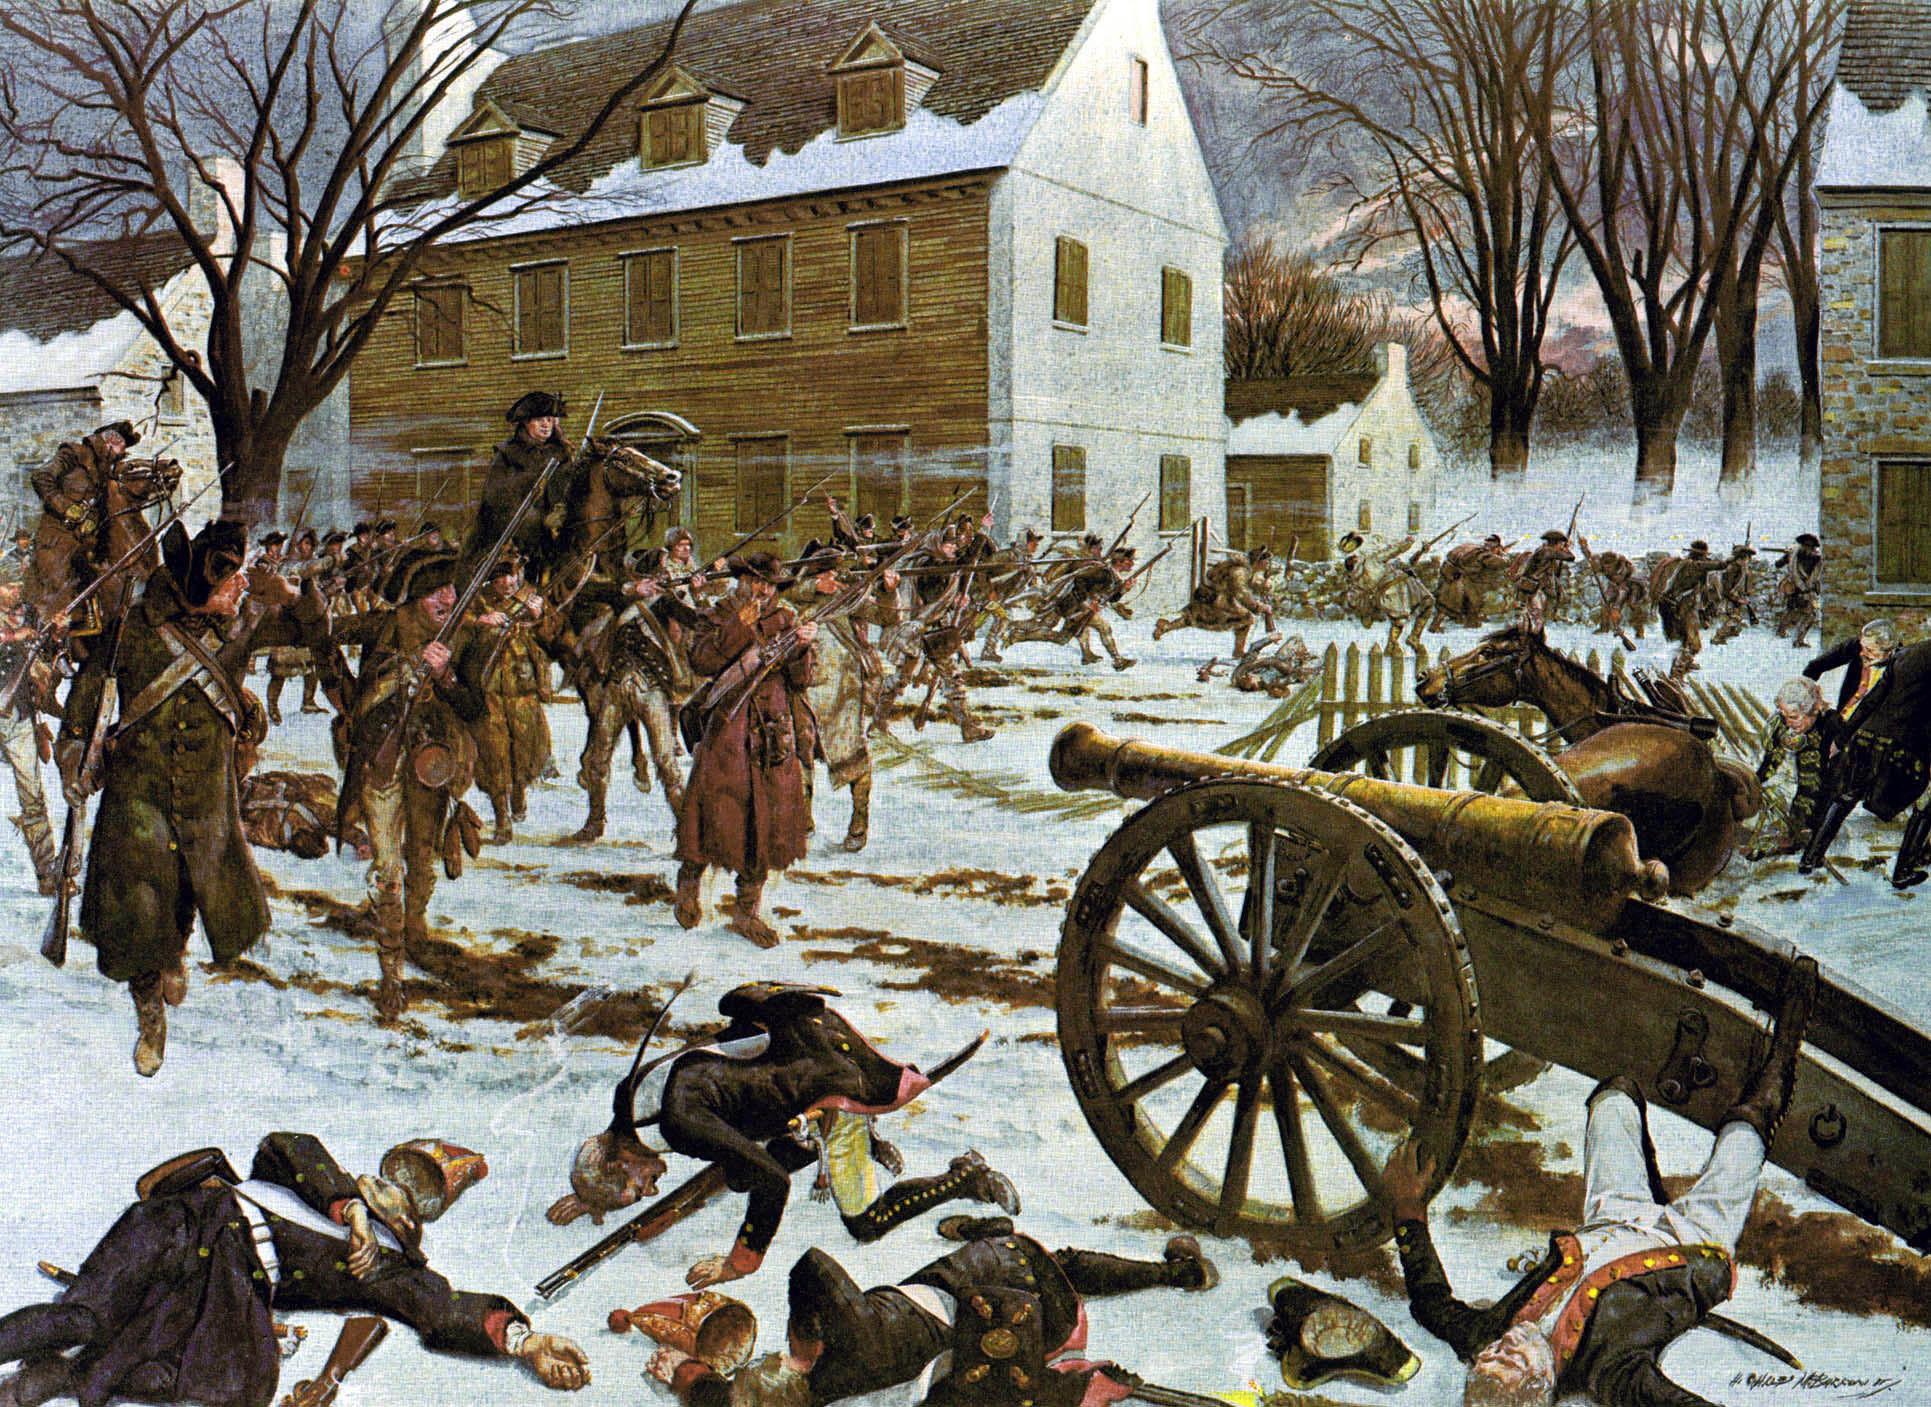 Battle_of_Trenton_by_Charles_McBarron.jp